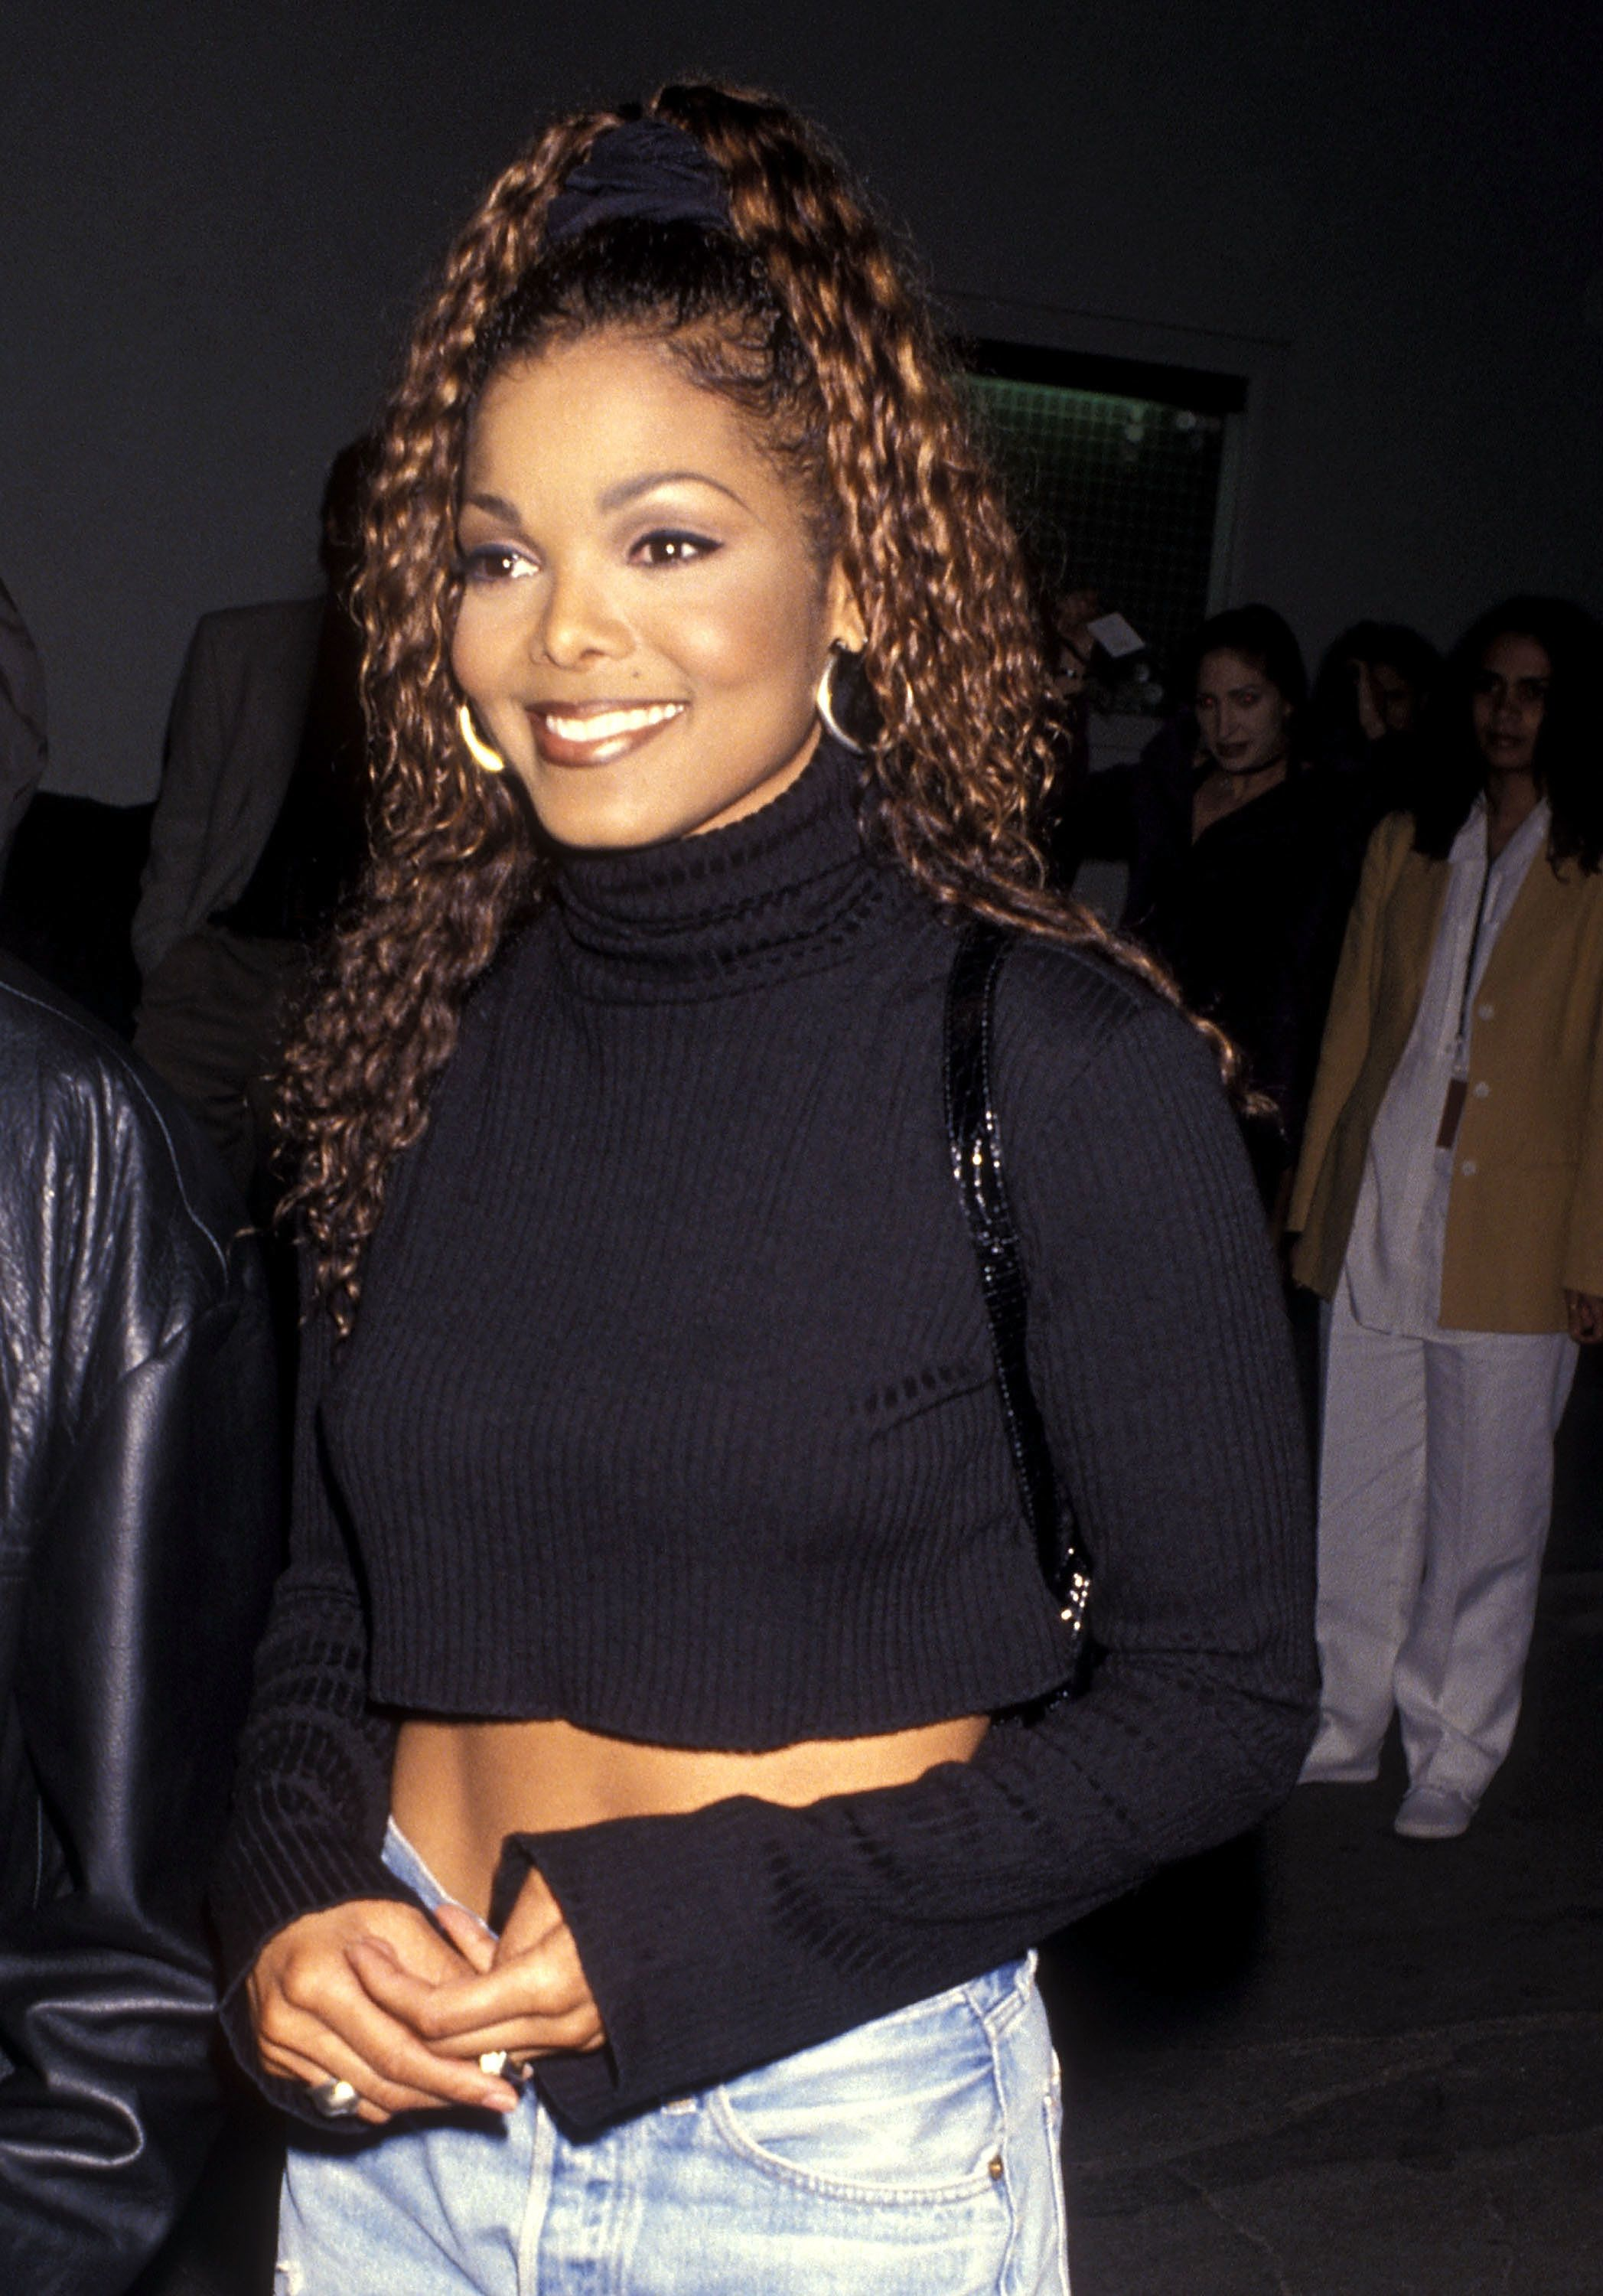 CULVER CITY, CA - APRIL 7:   Singer Janet Jackson attends the Party for Janet Jackson's Sold-Out Concert Tour and Plaque Presentation for 10 Million Copies of 'Janet' Album on April 7, 1994 at Sony Pictures Studios in Culver City, California. (Photo by Ron Galella, Ltd./WireImage)